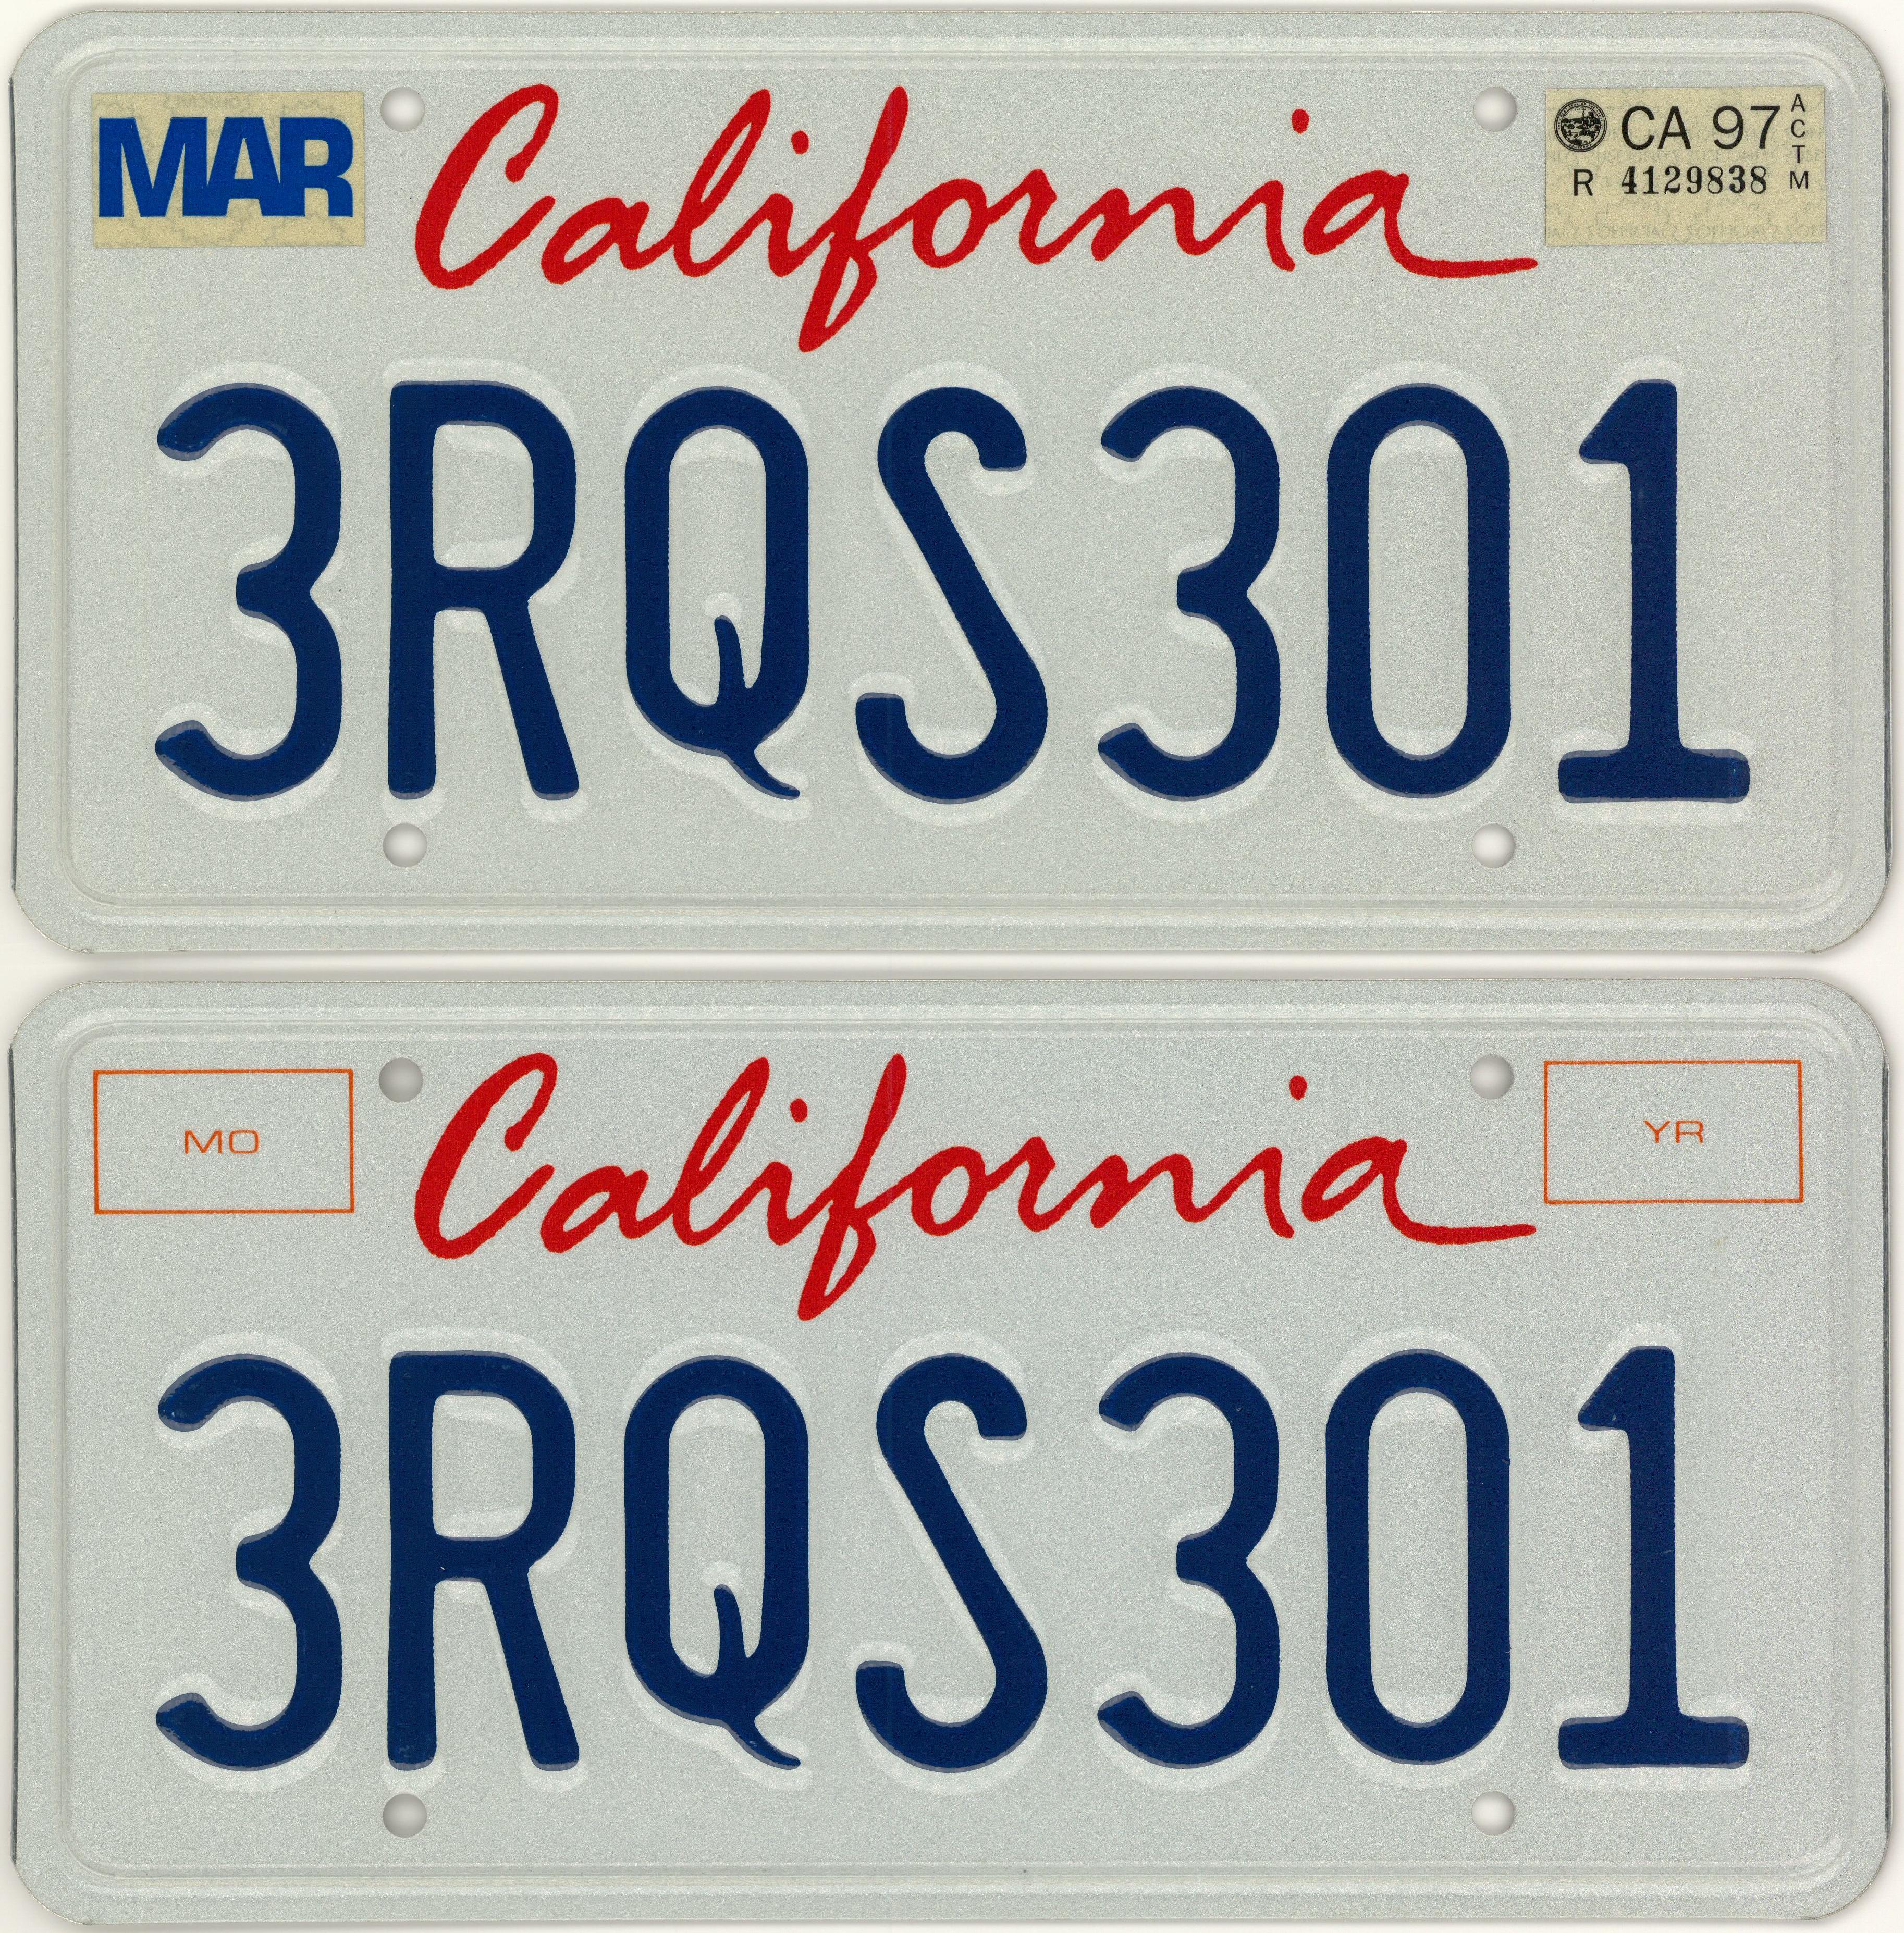 lot detail tupac shakur rolls royce california license plates and registration letter of. Black Bedroom Furniture Sets. Home Design Ideas